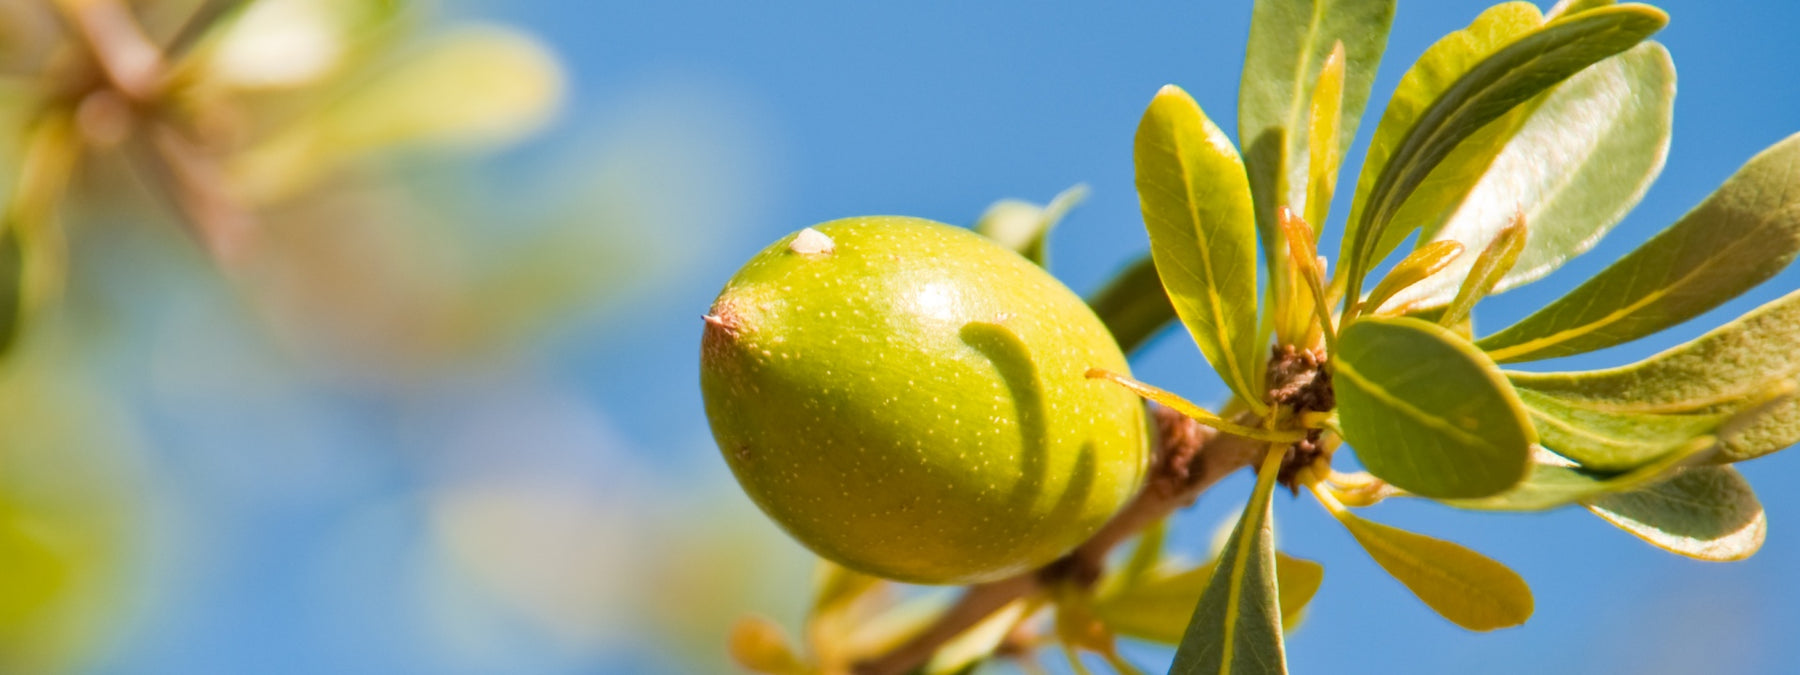 Argan Oil - Complete Guide to History, Uses, and Benefits